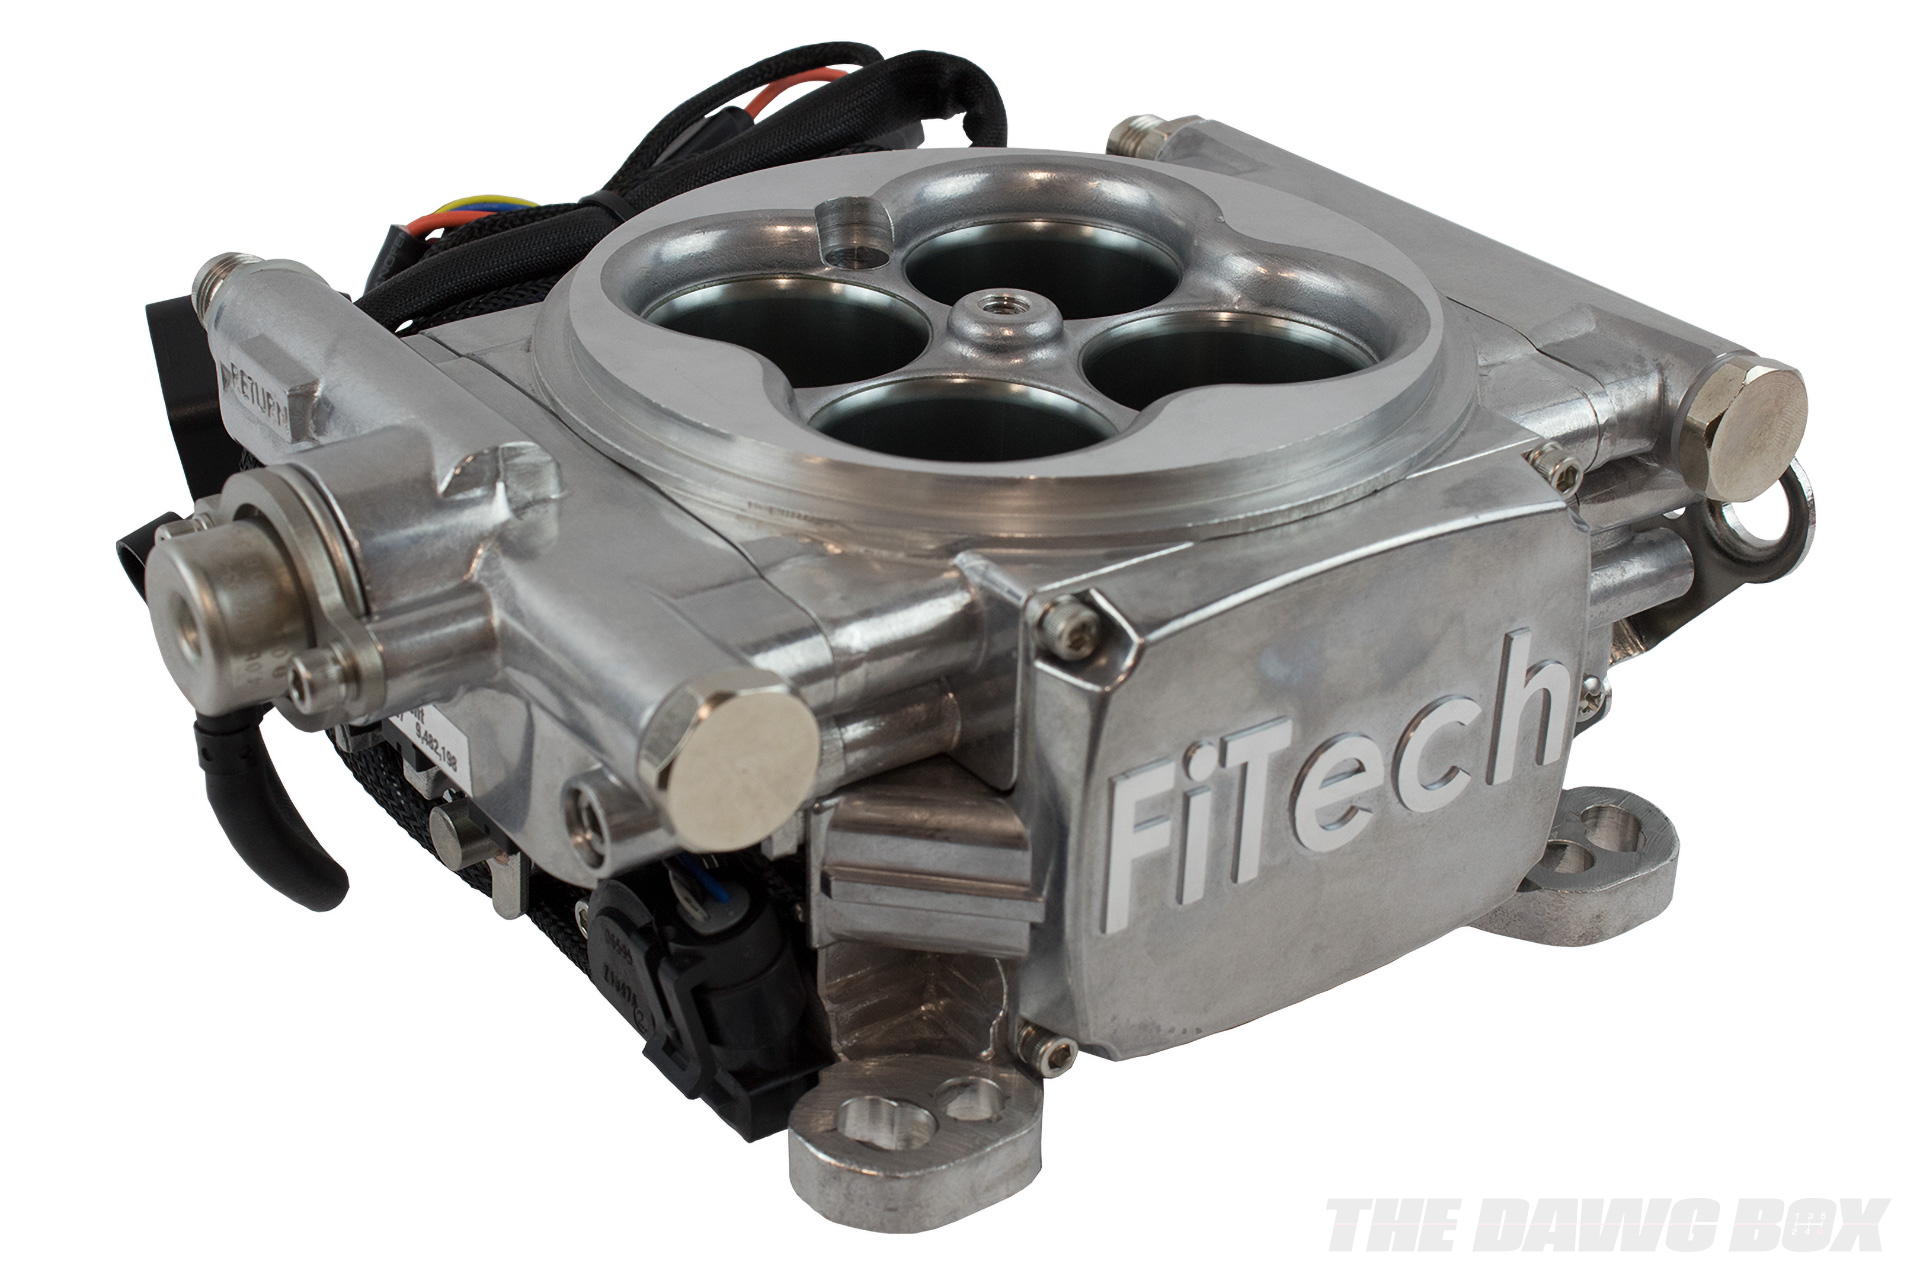 EFI system from FiTech